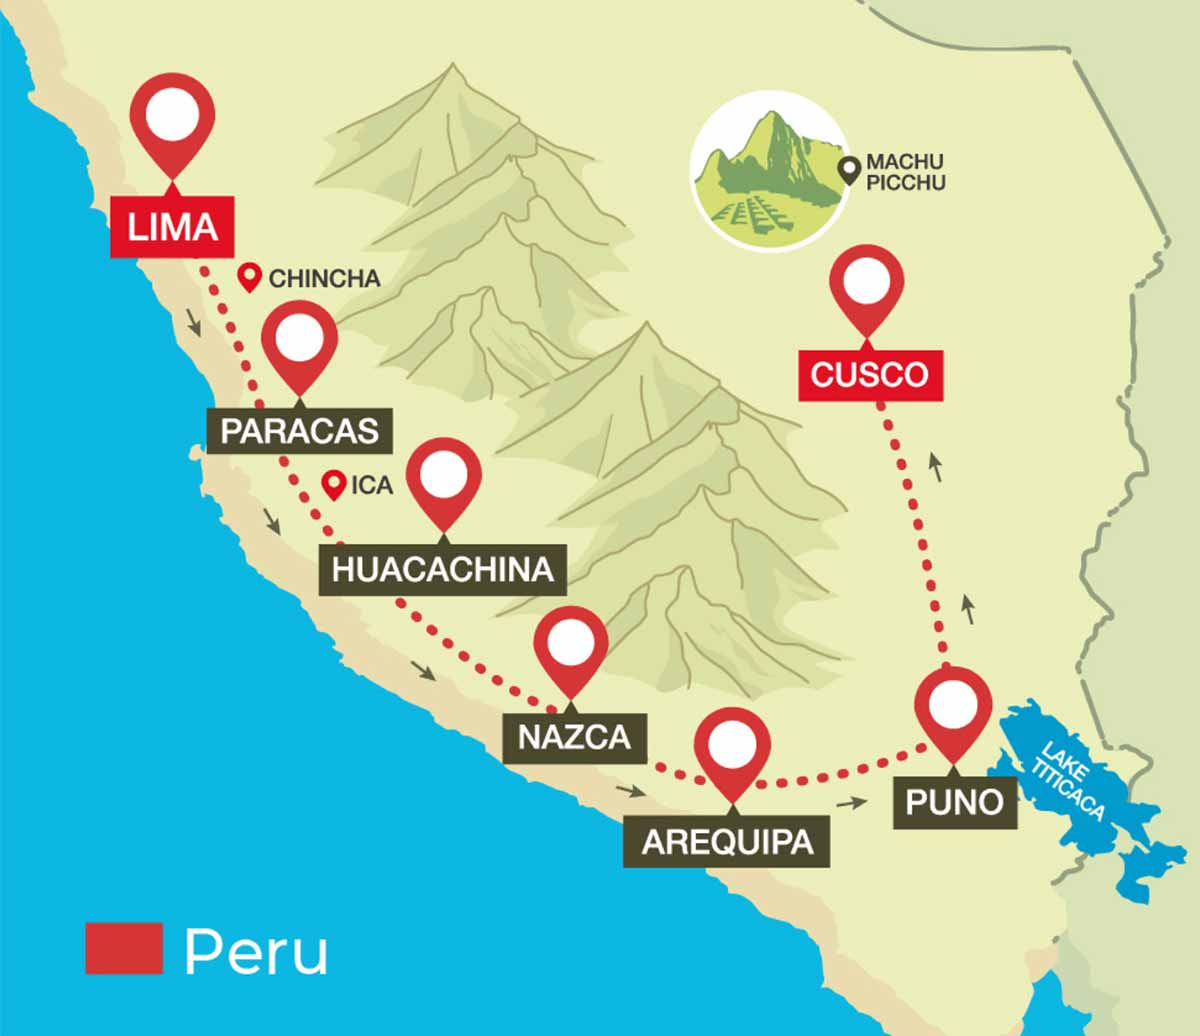 Map of Peru Hop full south to cusco route Lima, Paracas, Huacachina, Nazca, Arequipa, Puno, and Cusco